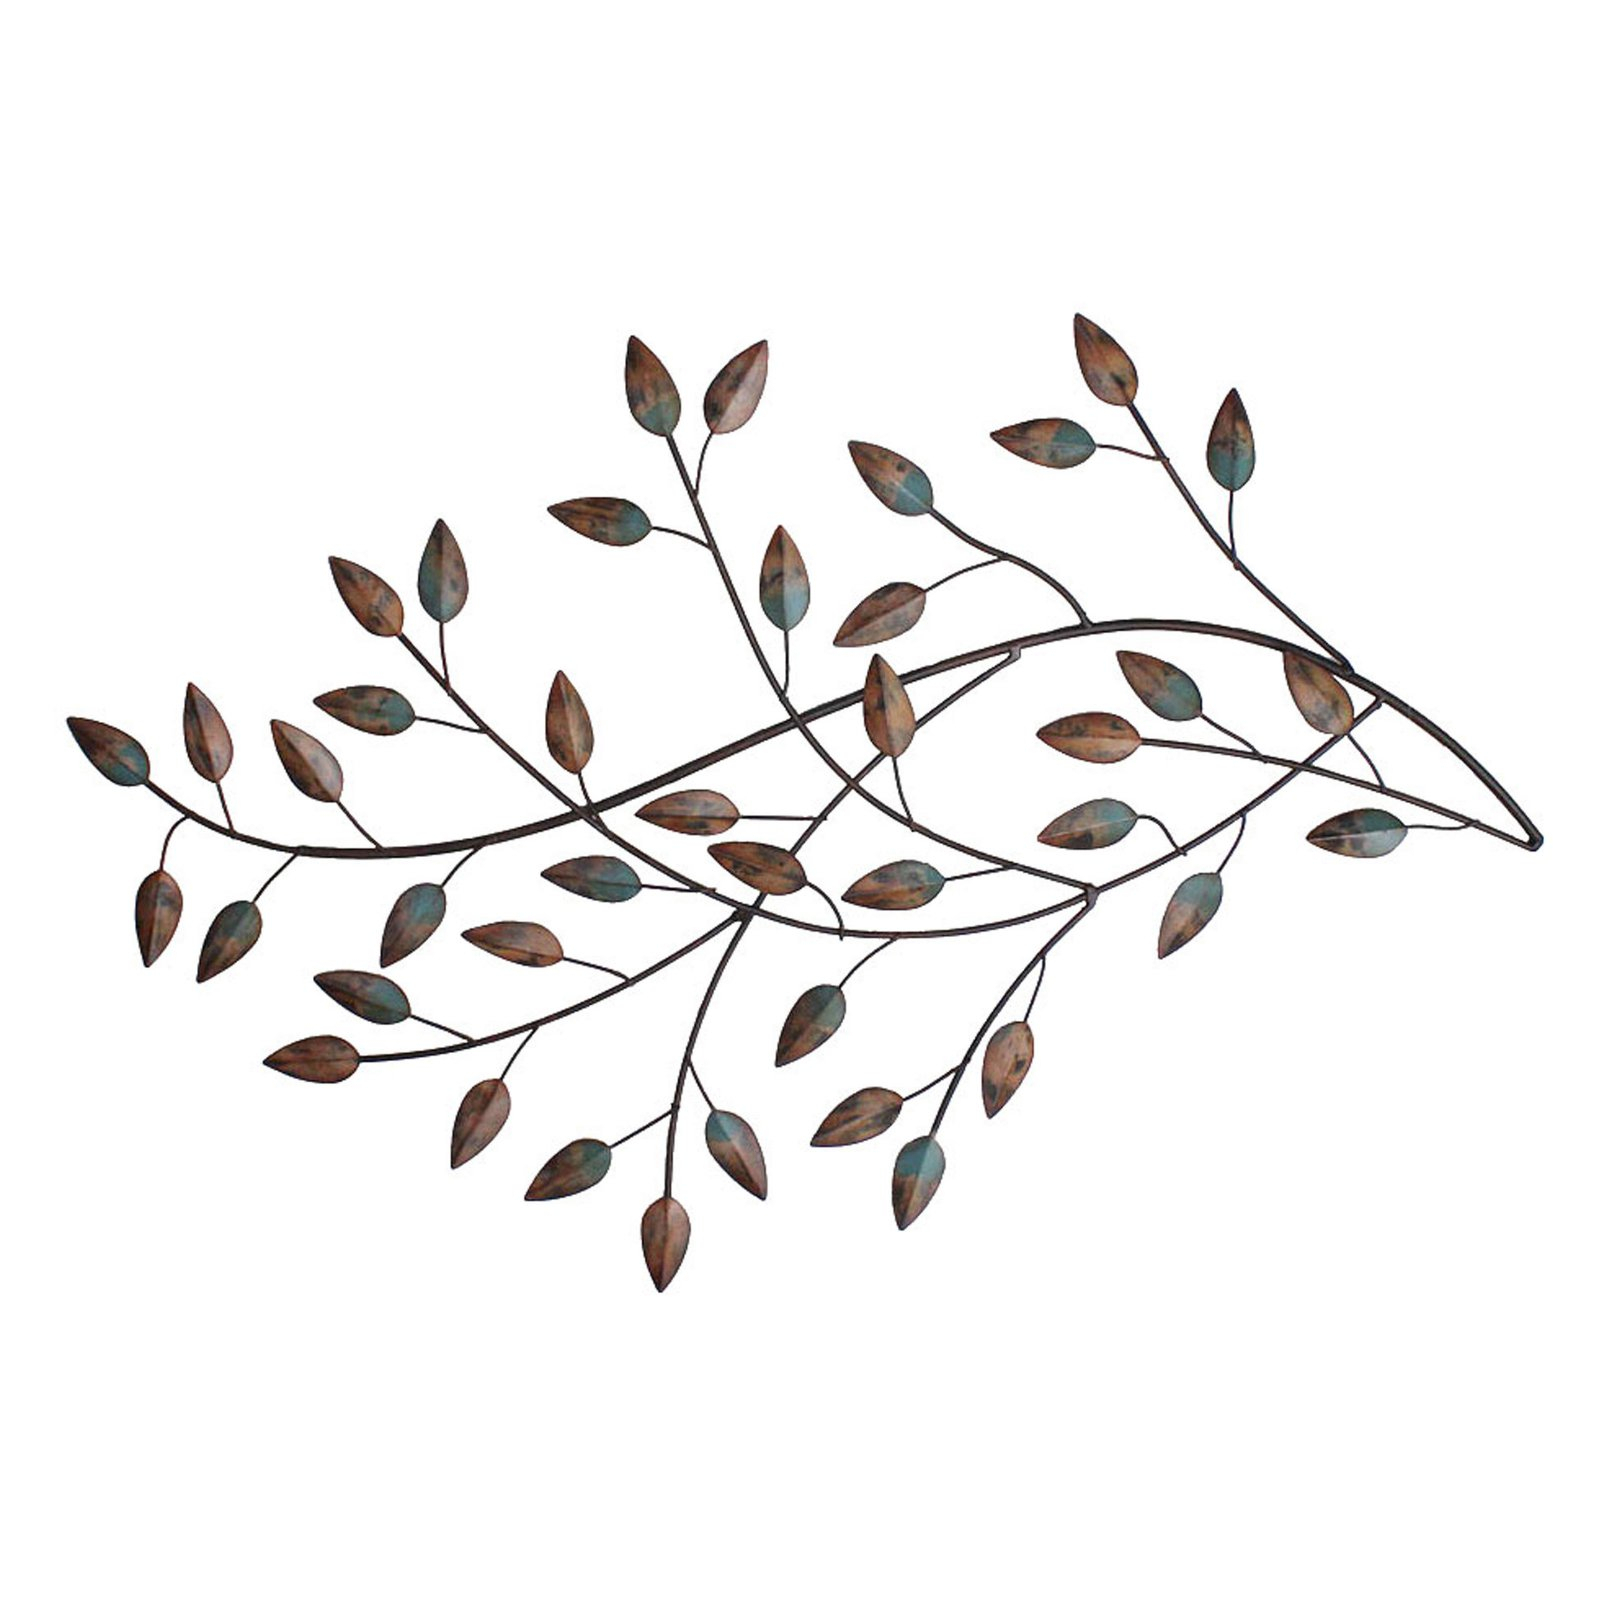 Well Known Blowing Leaves Wall Decor With Regard To Stratton Home Decor Blowing Leaves Wall Decor – Walmart (View 2 of 20)